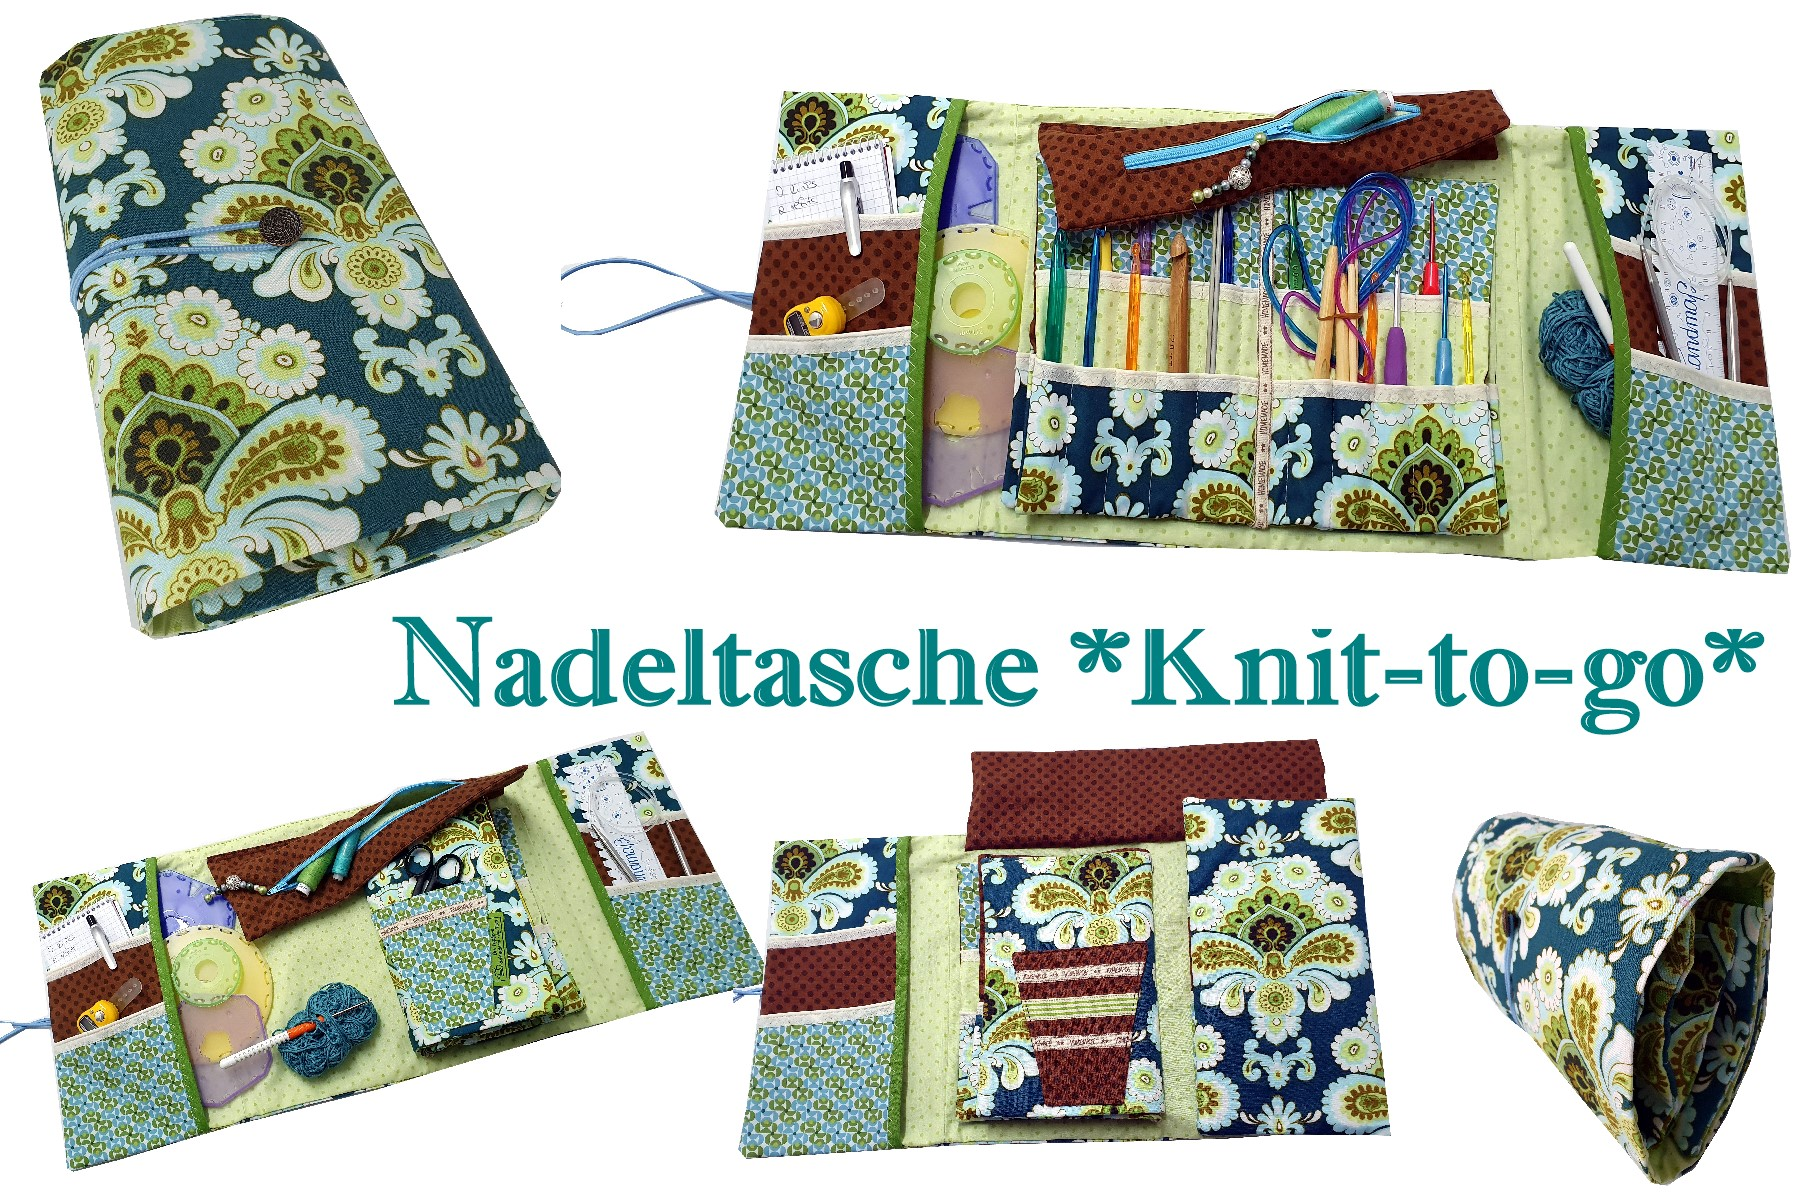 Nadeltasche, *Knit-to-go*, 42,90 €